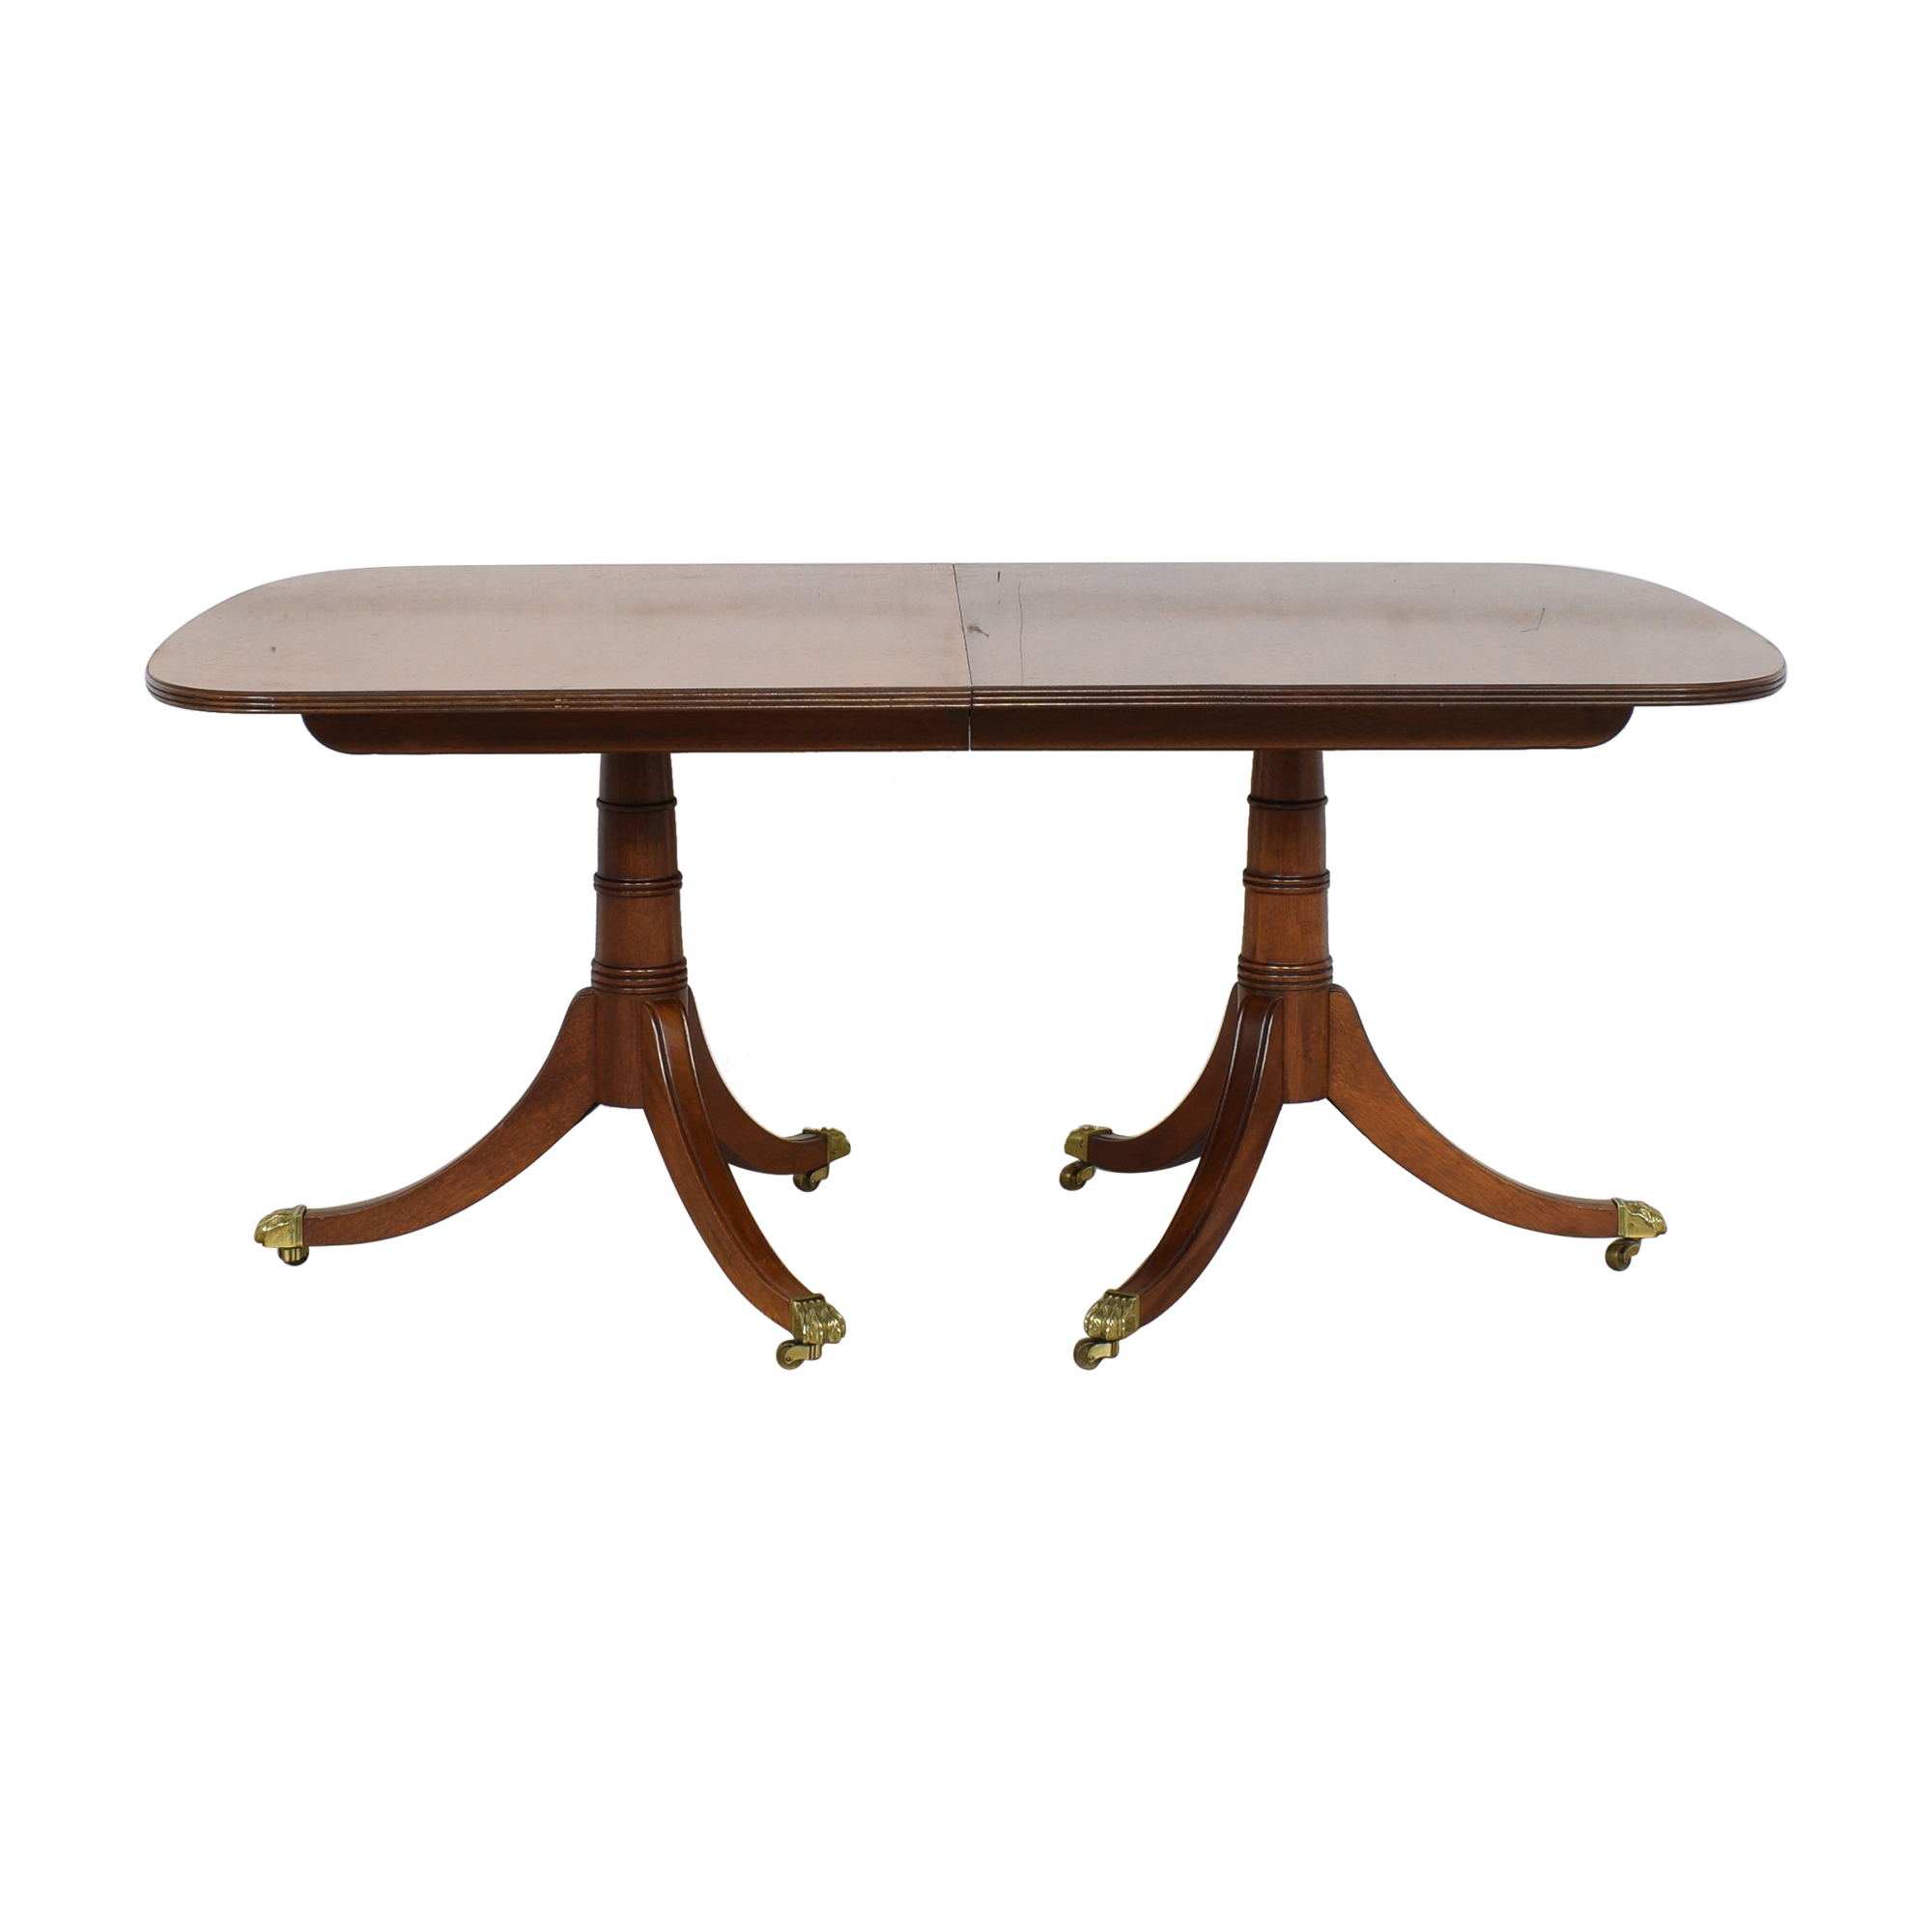 buy Stickley Furniture Stickley Extendable Double Pedestal Dining Table online